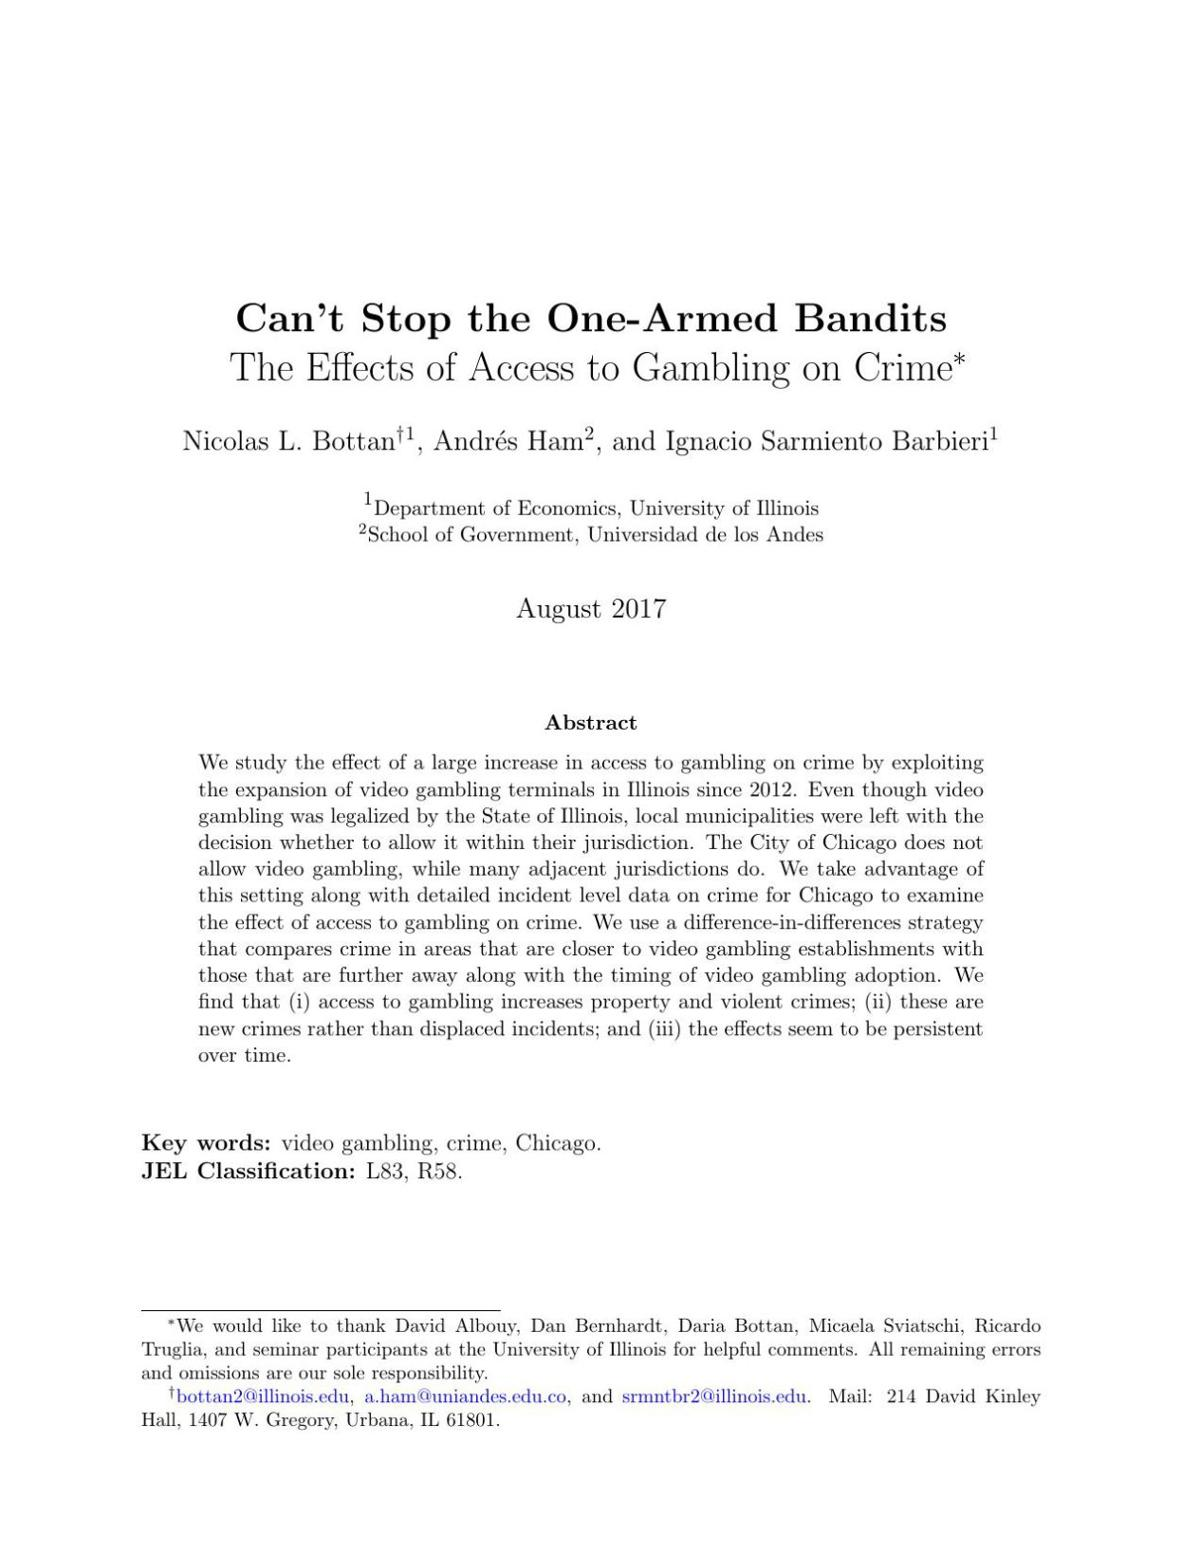 """""""Can't Stop the One-Armed Bandits: The Effects of Access to Gambling on Crime"""""""